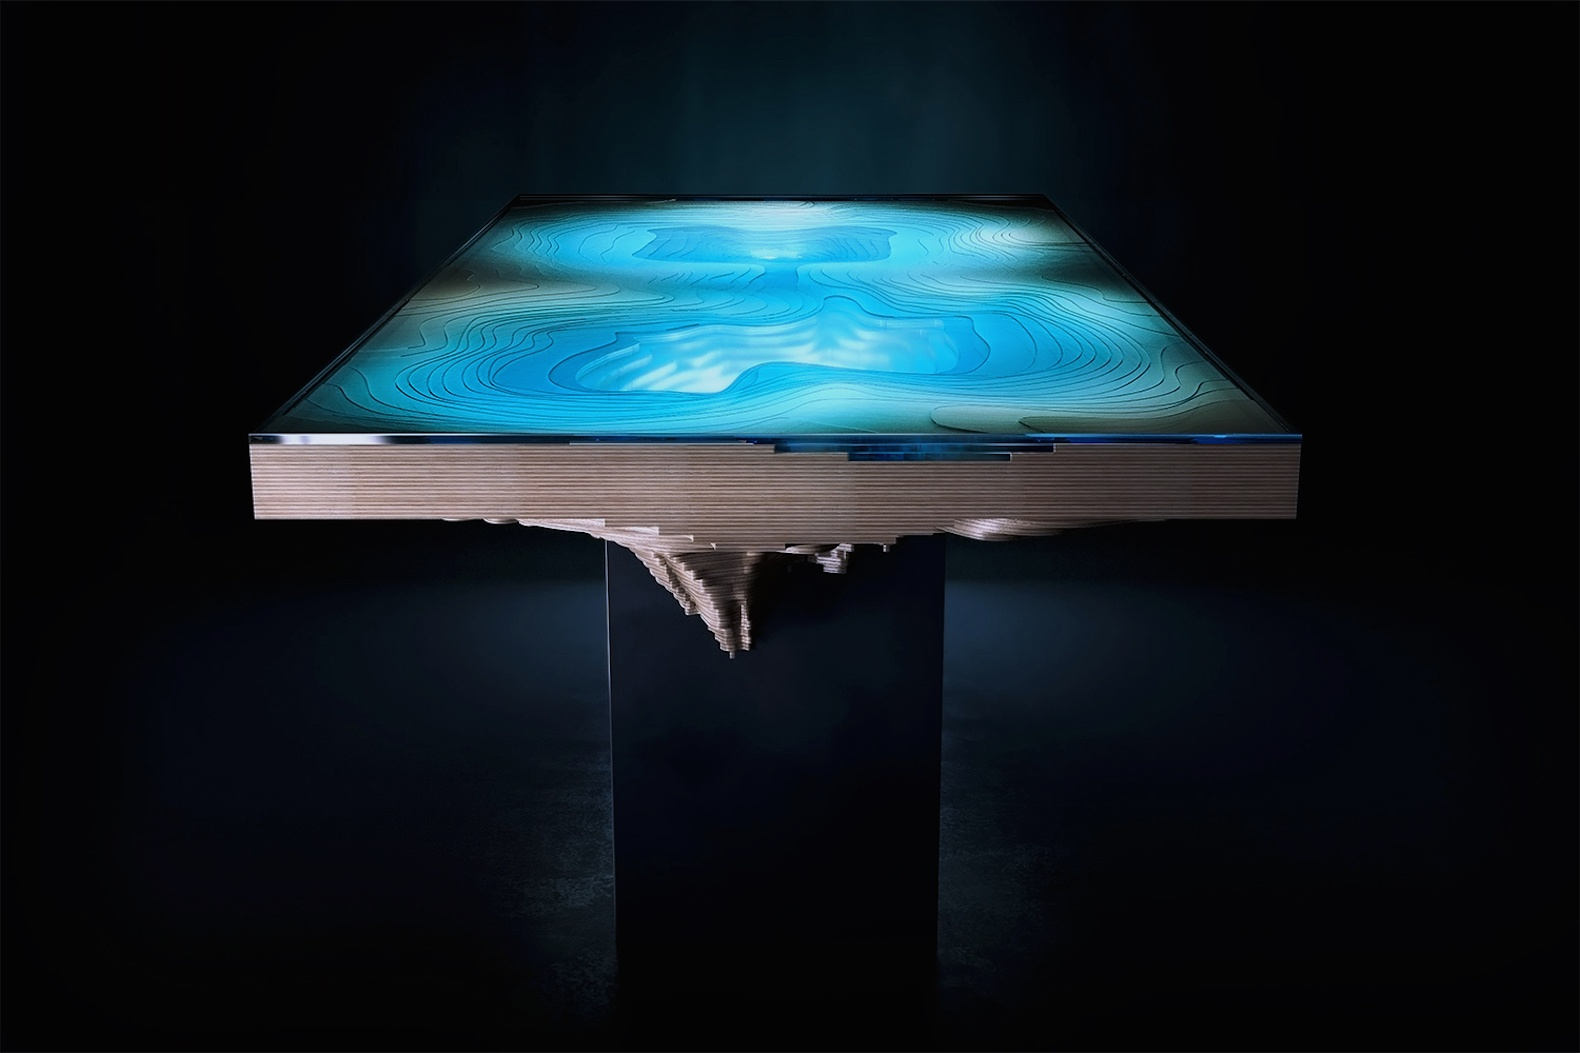 abyss-dining-table-by-duffy-london-3_1_01